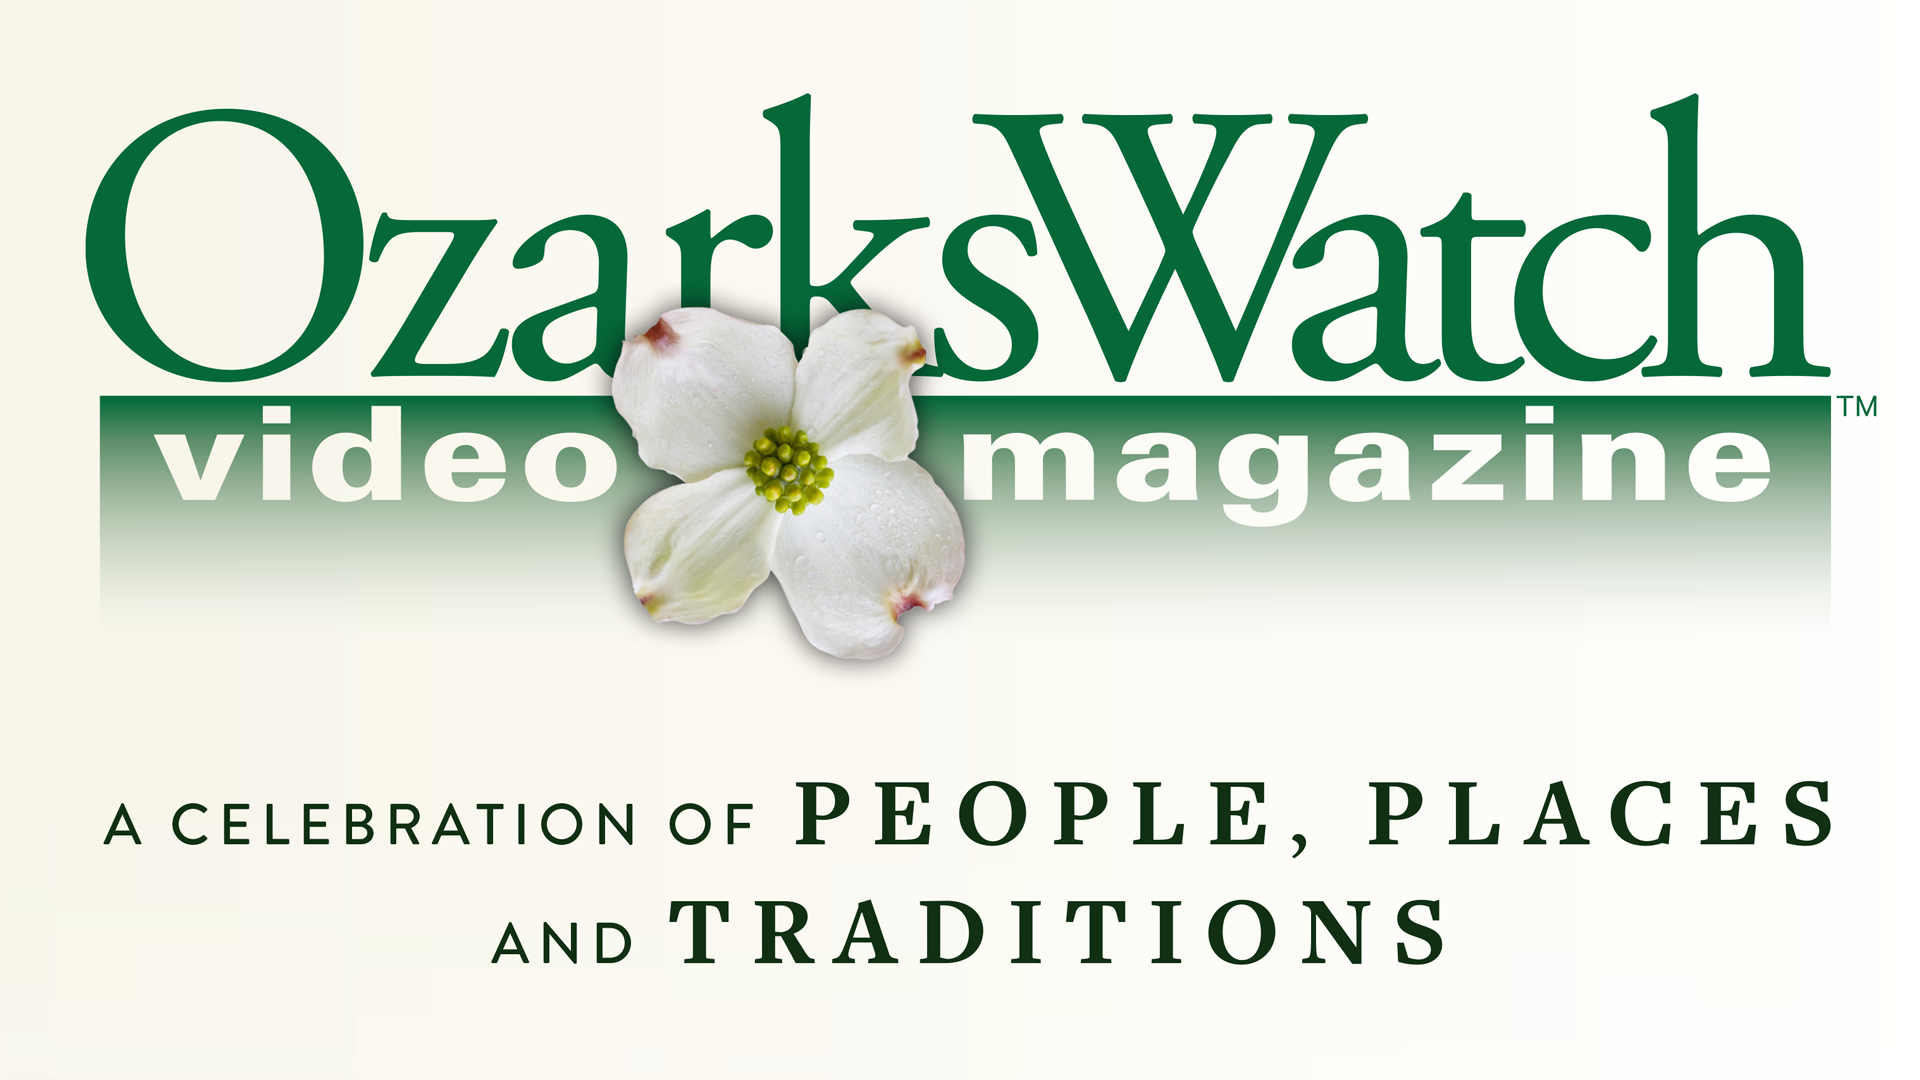 OzarksWatch Video Magazine-A Celebration of People, Places and Traditions